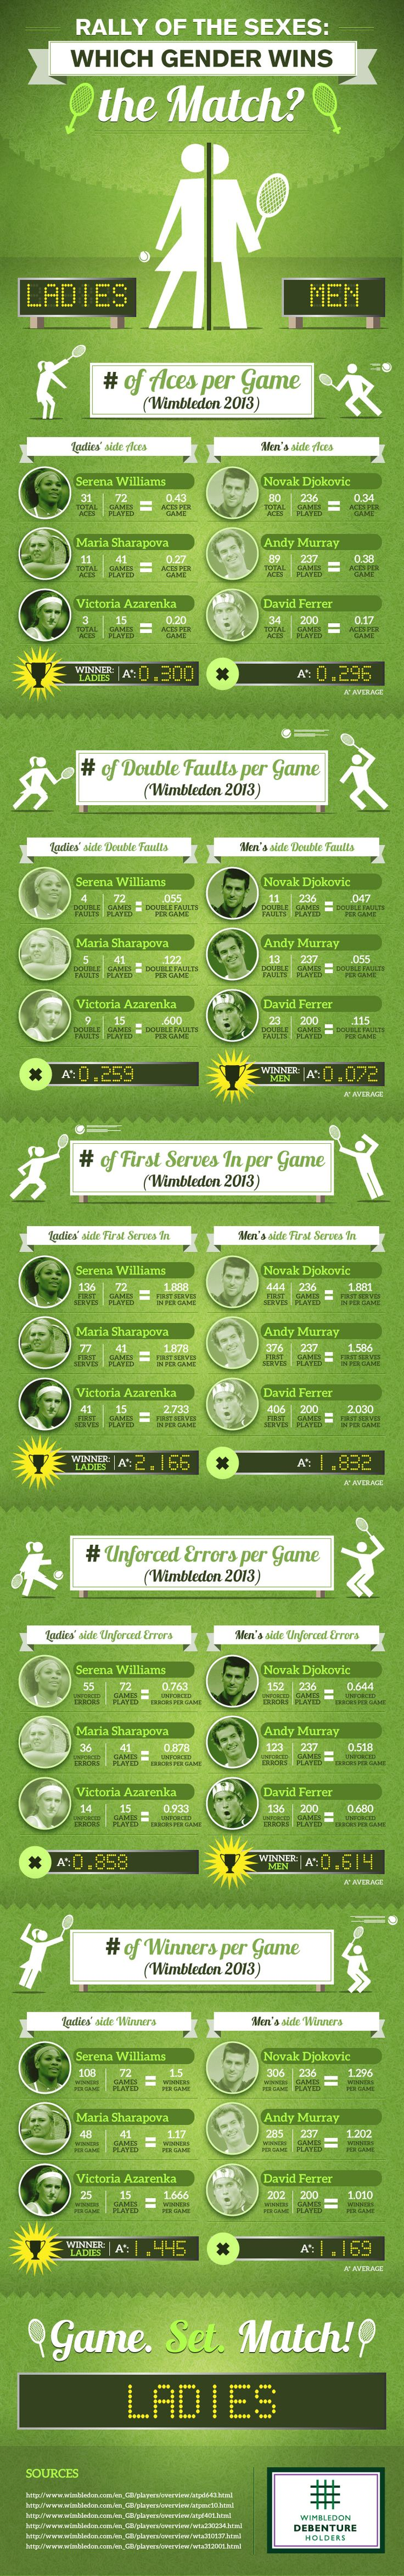 Rally Of The Sexes: Which Gender Wins The Match?  #Infographic #Tennis #sports